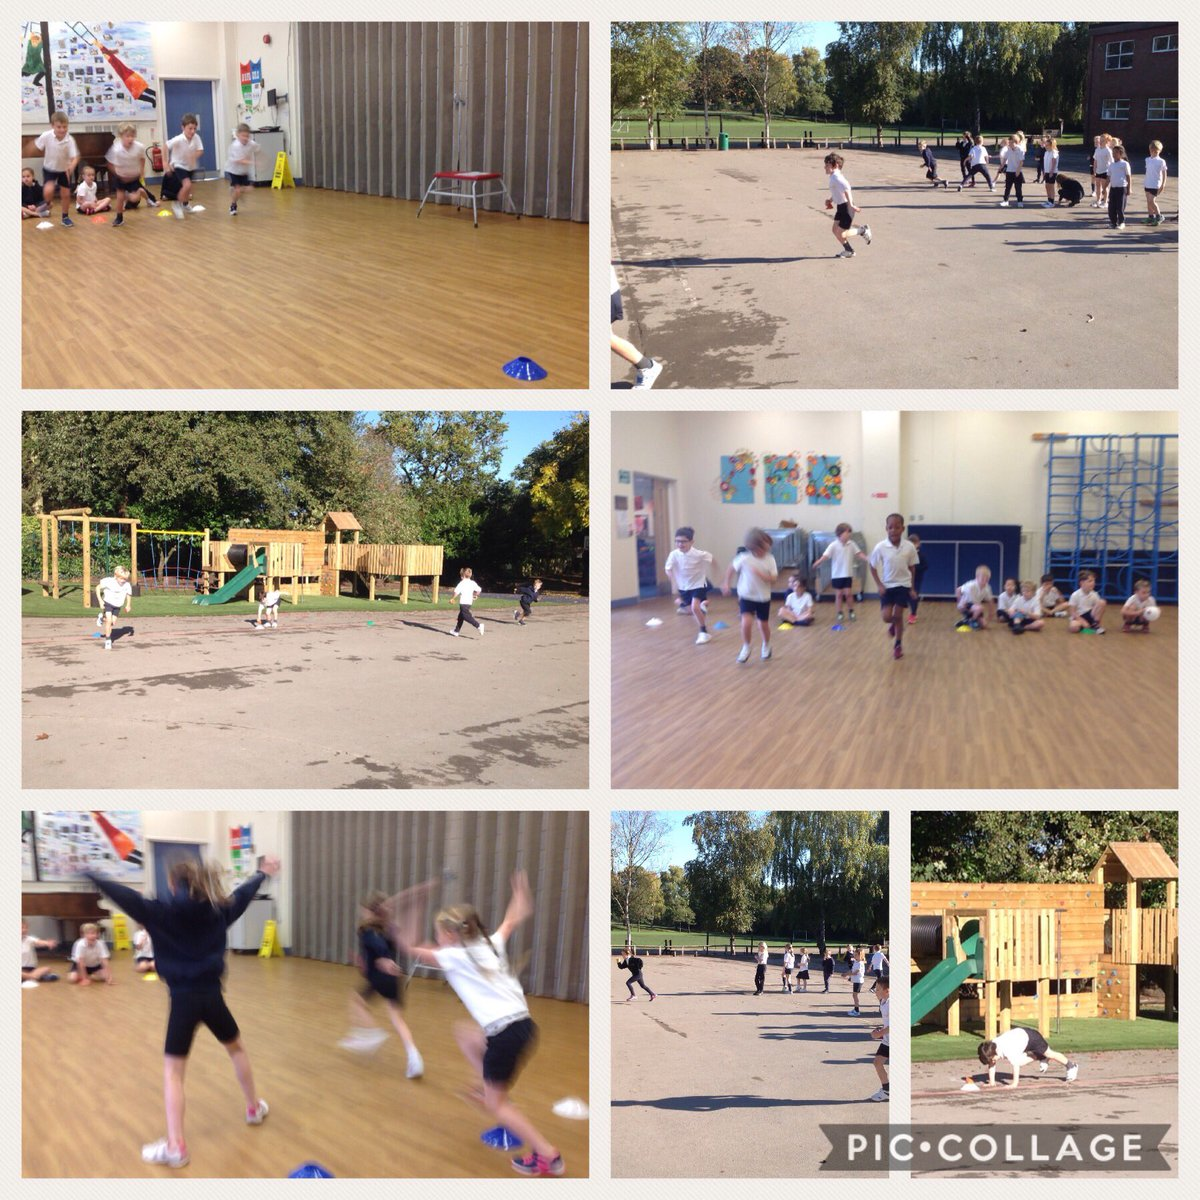 test Twitter Media - Great fun in the sun! #gorseype https://t.co/kyZTooIb1C